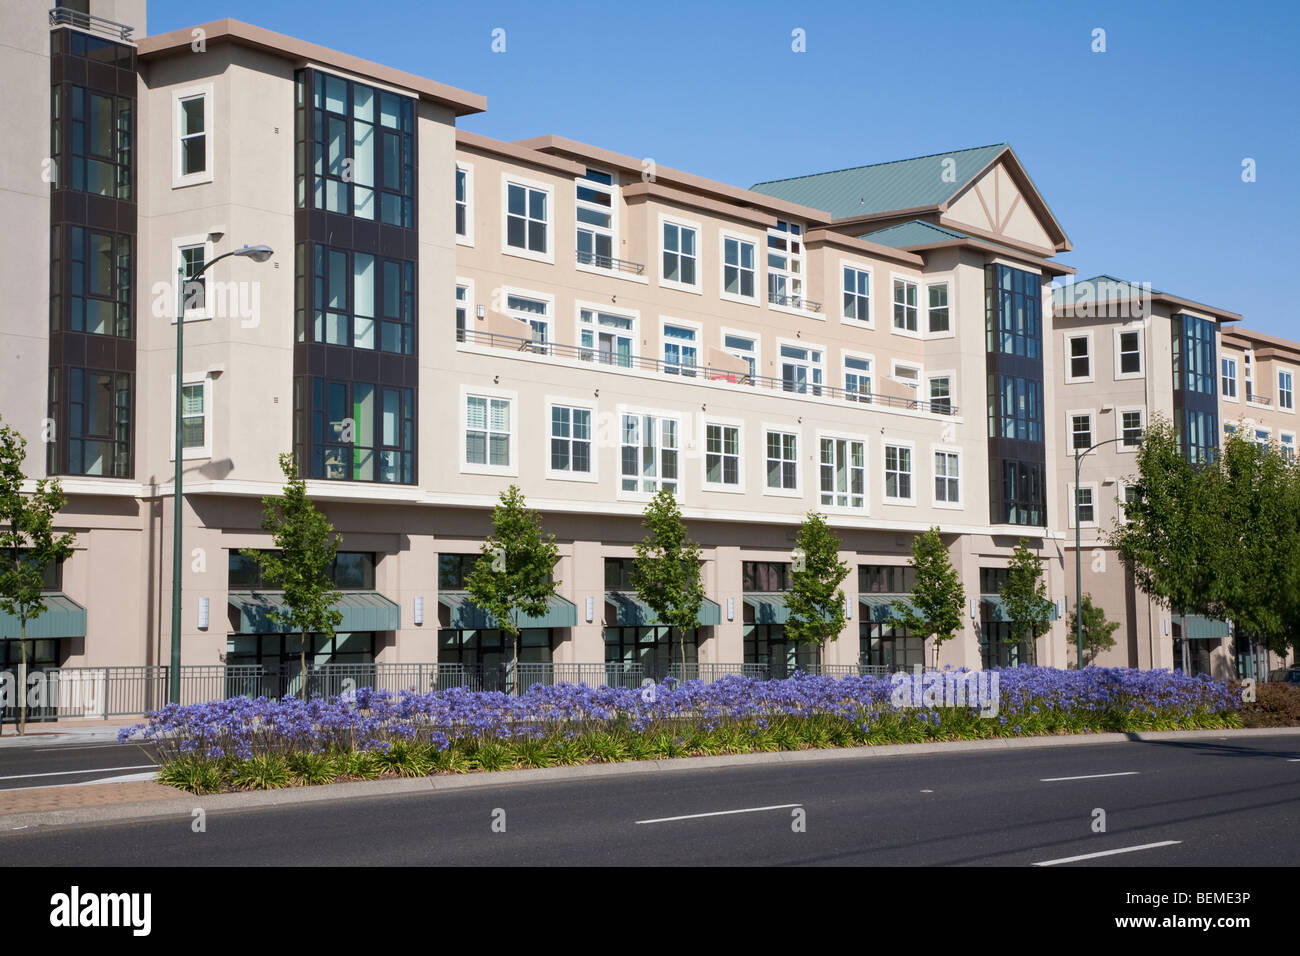 A mixed use building with apartments and office space viewed from a road. Park Broadway on El Camino Real in Millbrae, Stock Photo